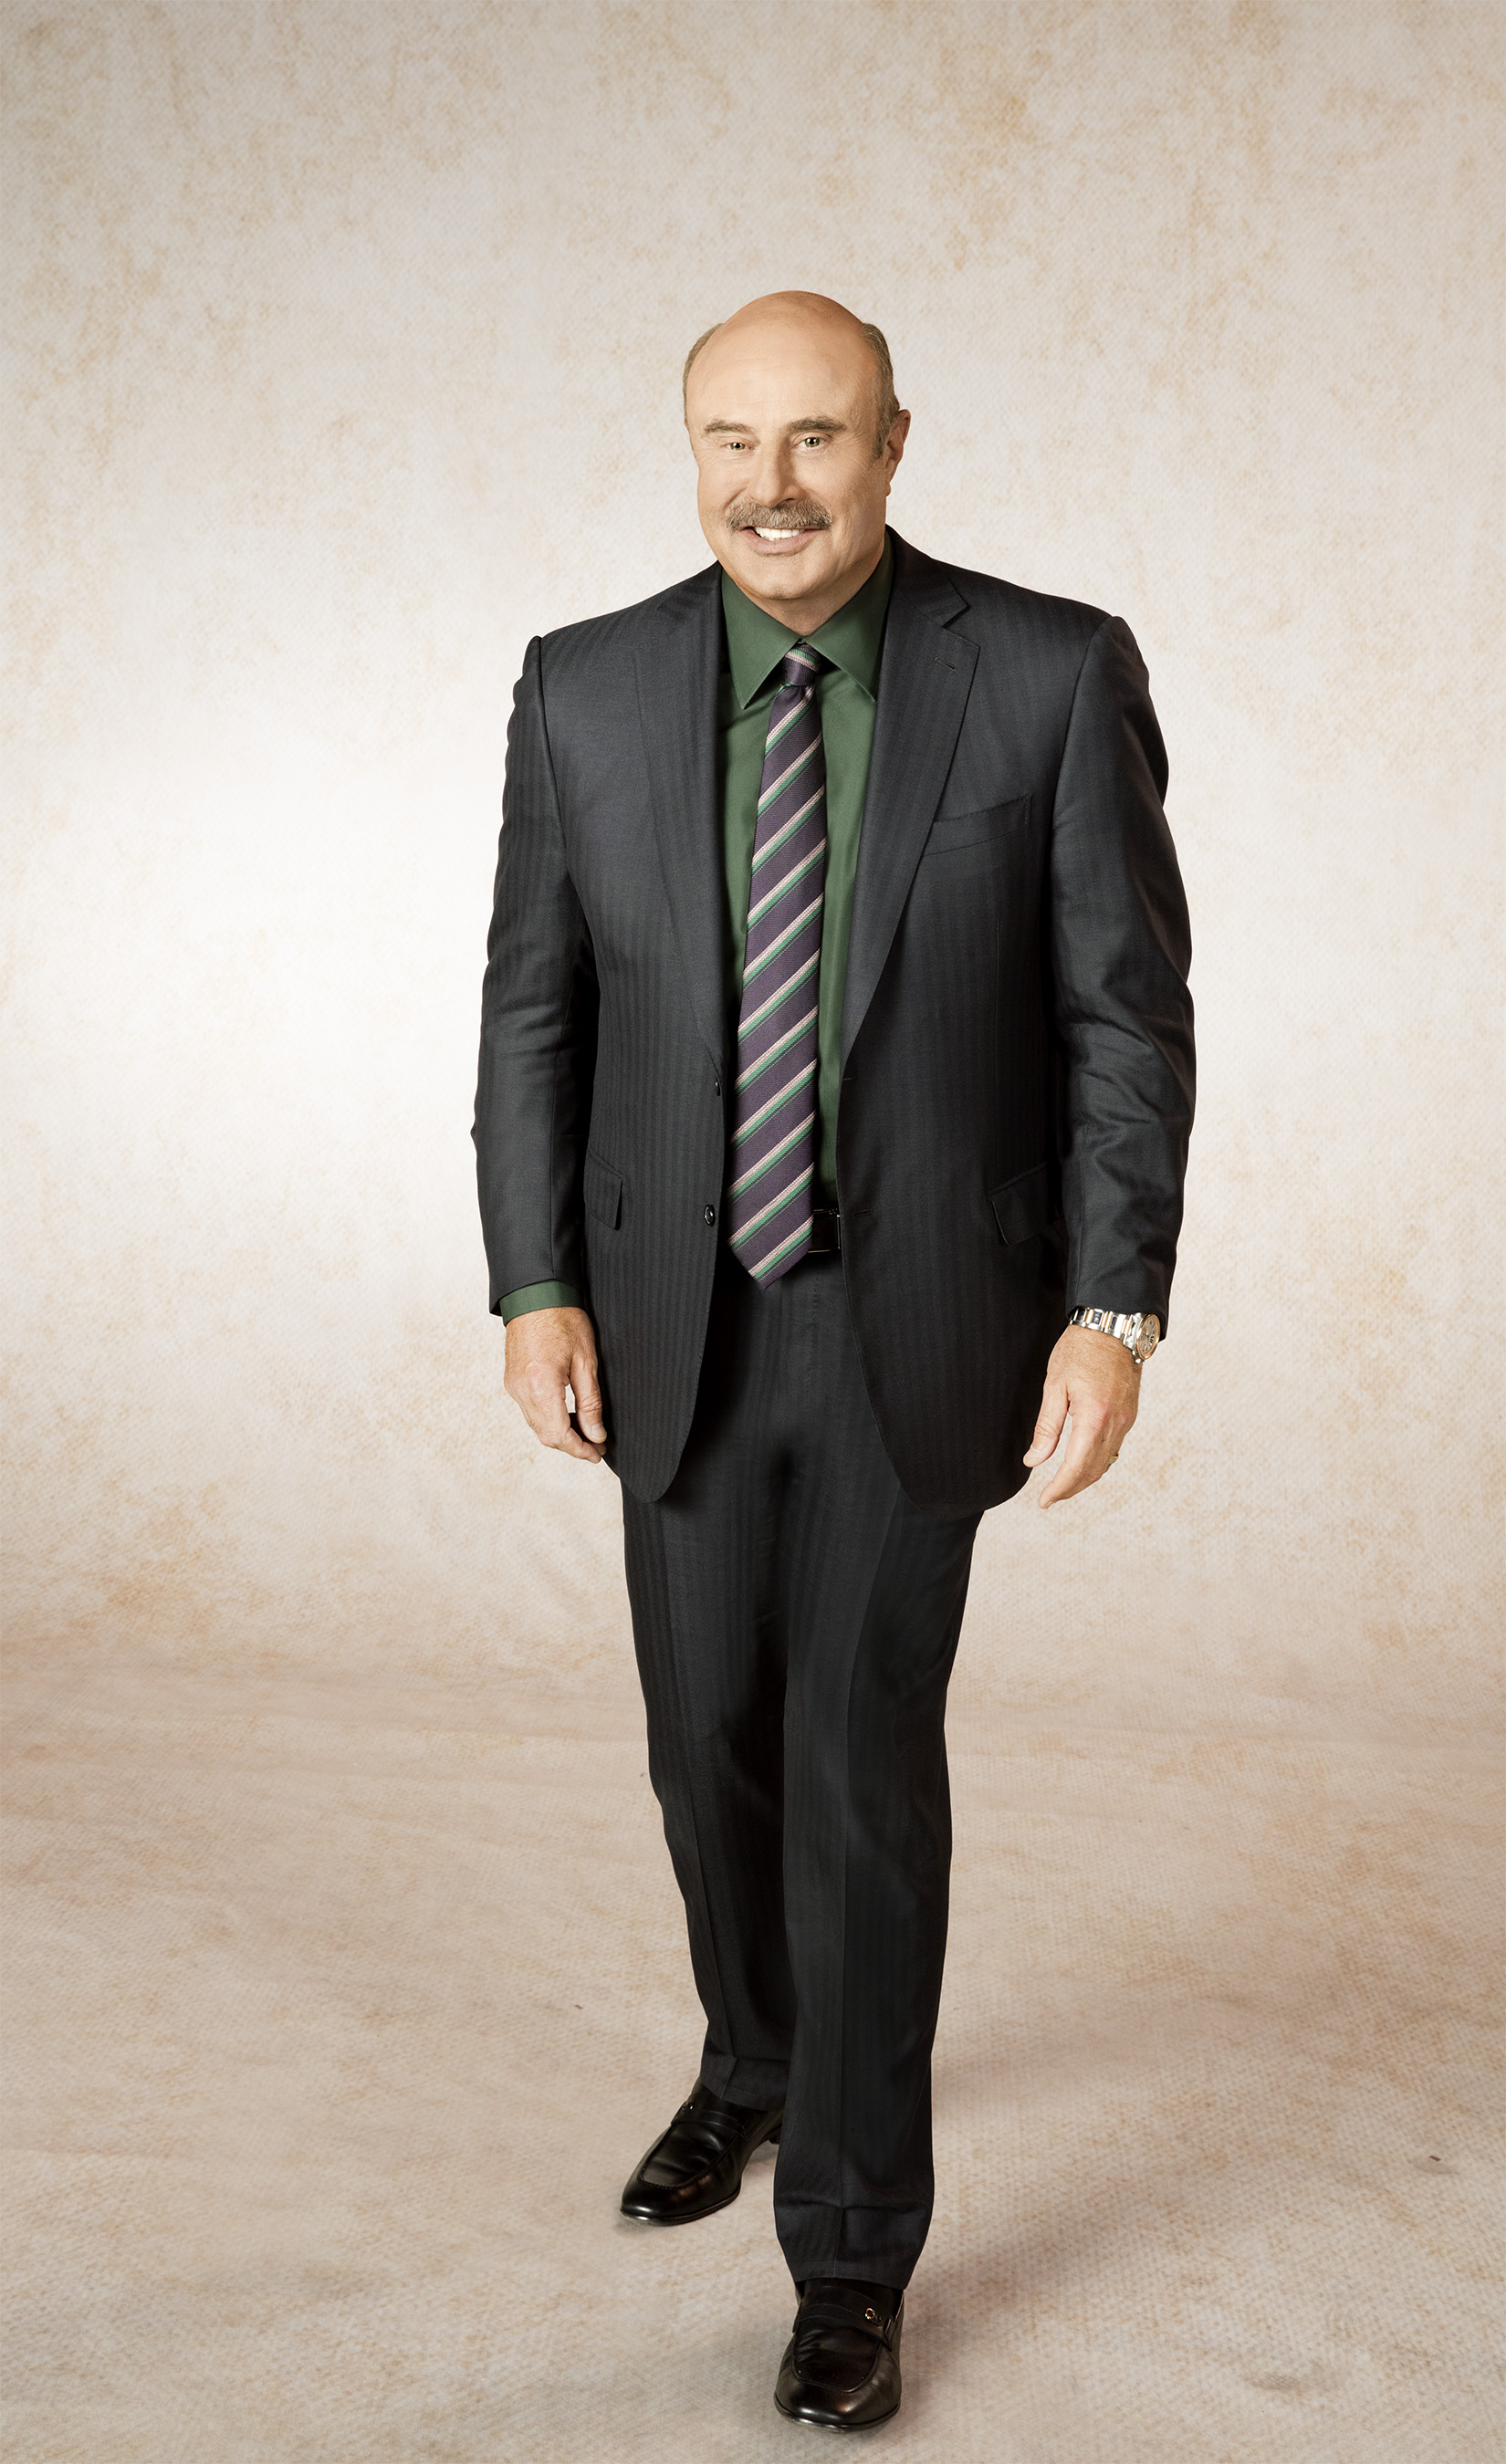 Dr. Phil shares personal experience with Type 2 Diabetes